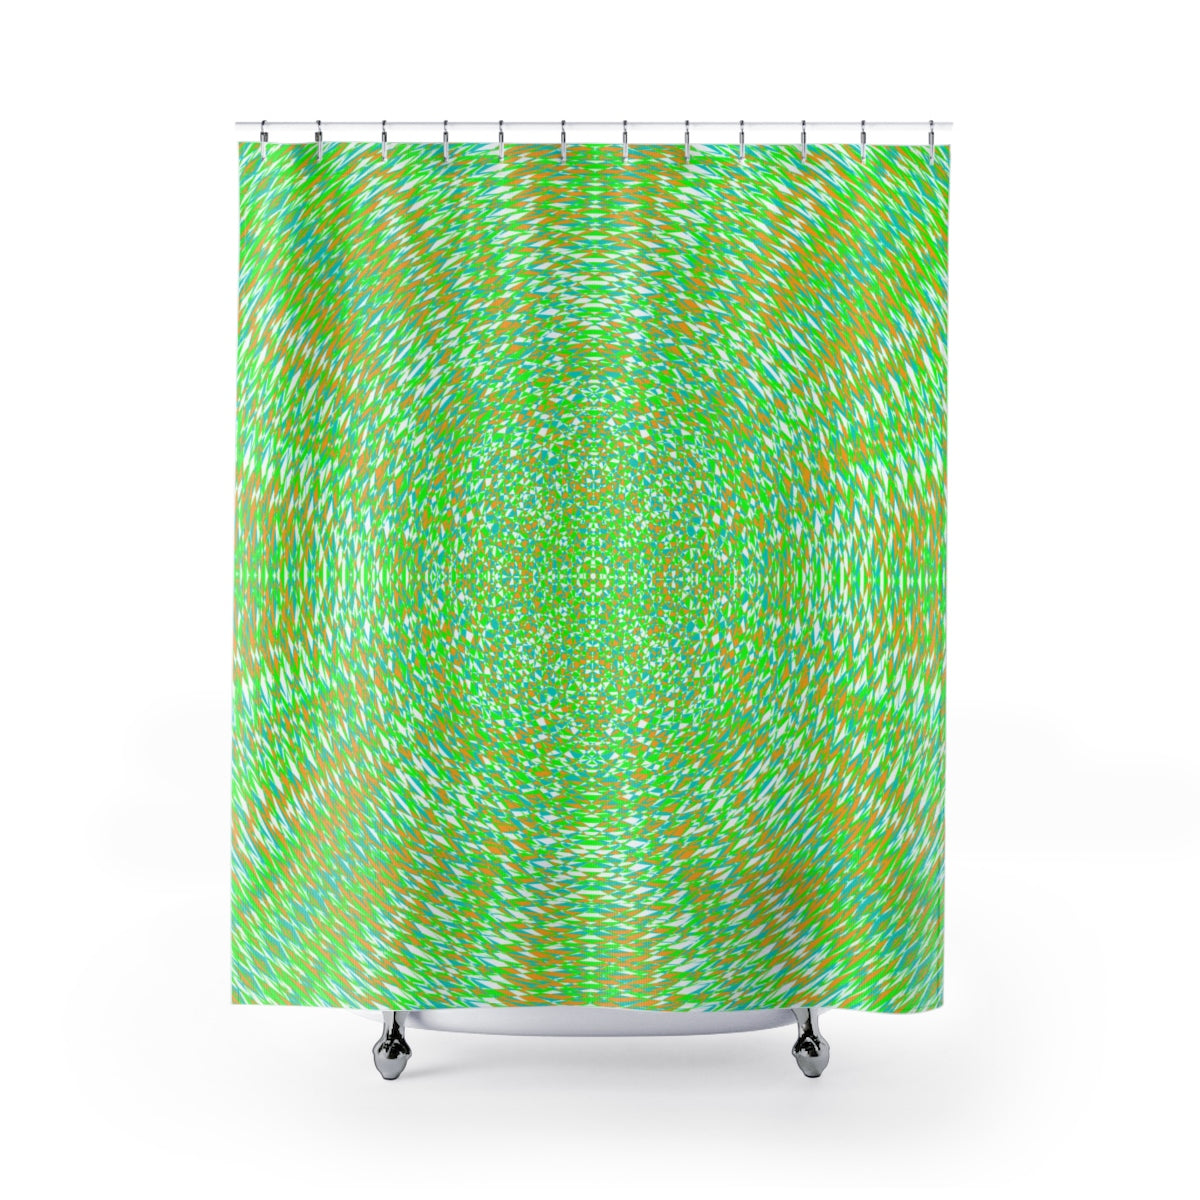 The Navigator's Cross I . Shower Curtains